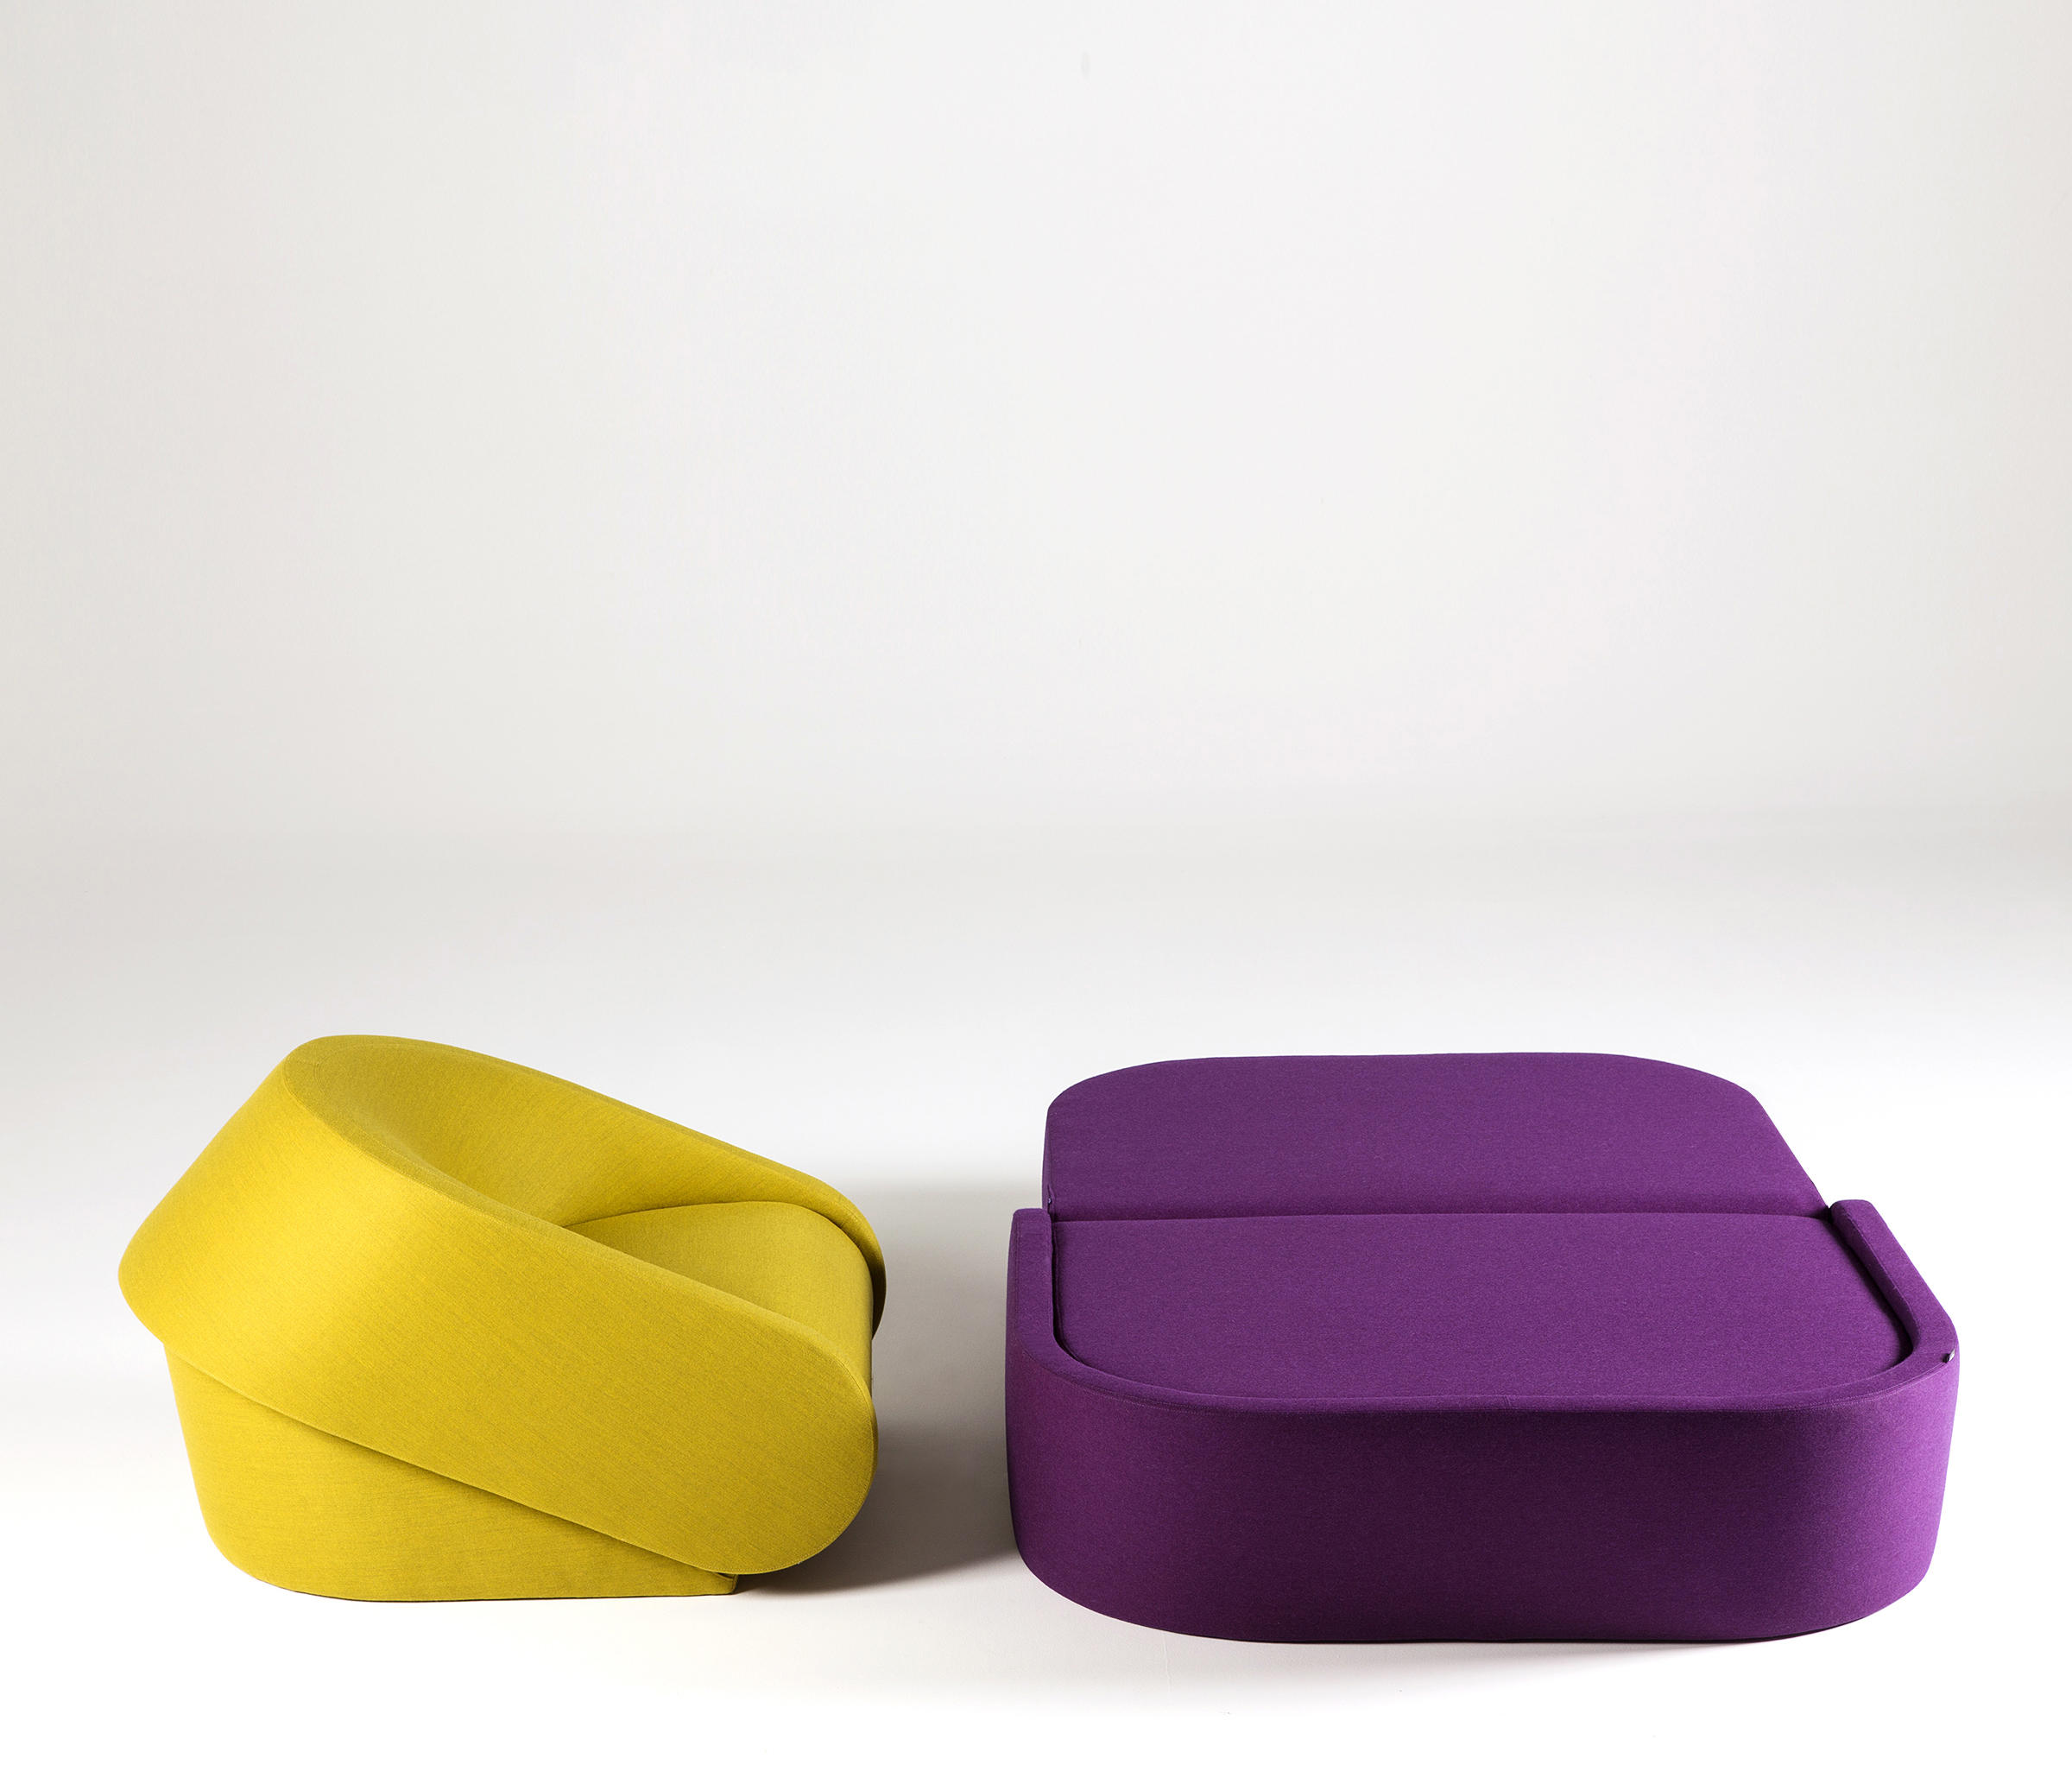 Up-lift Collection by Prostoria